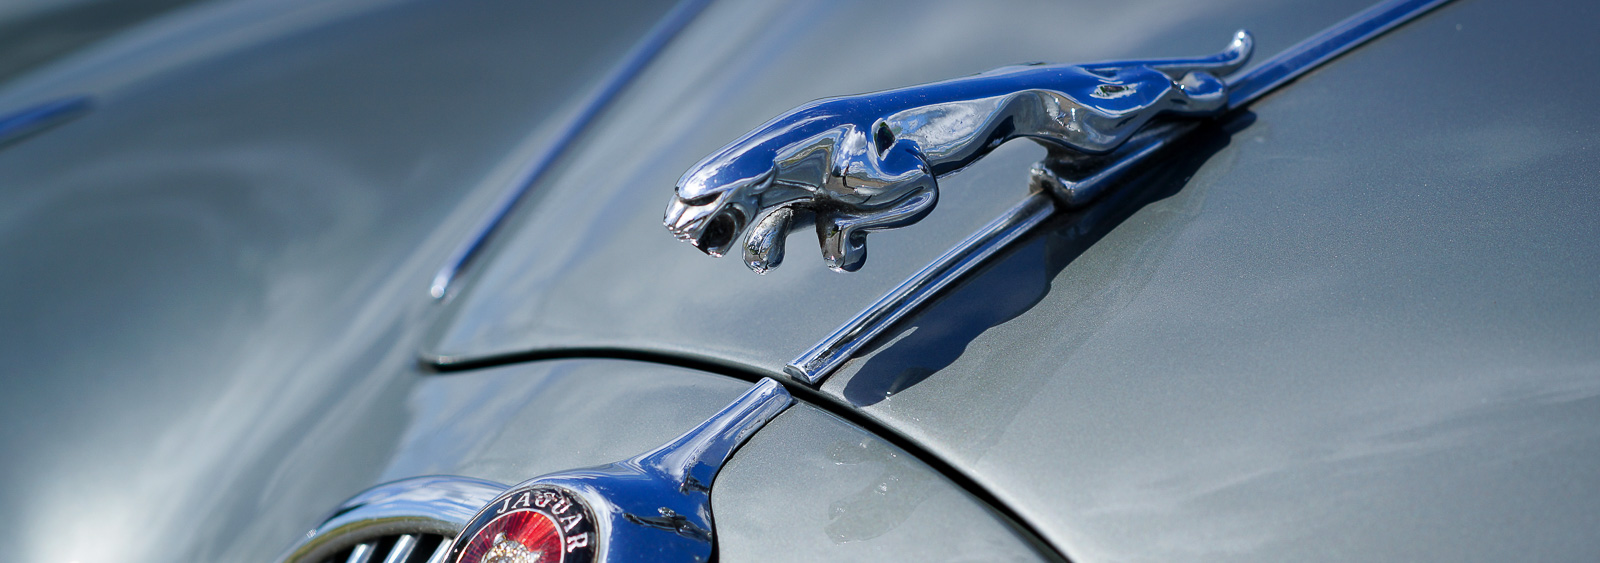 Jaguar-Mk-2-Mk2-automatic-grey-metallic-17.jpg